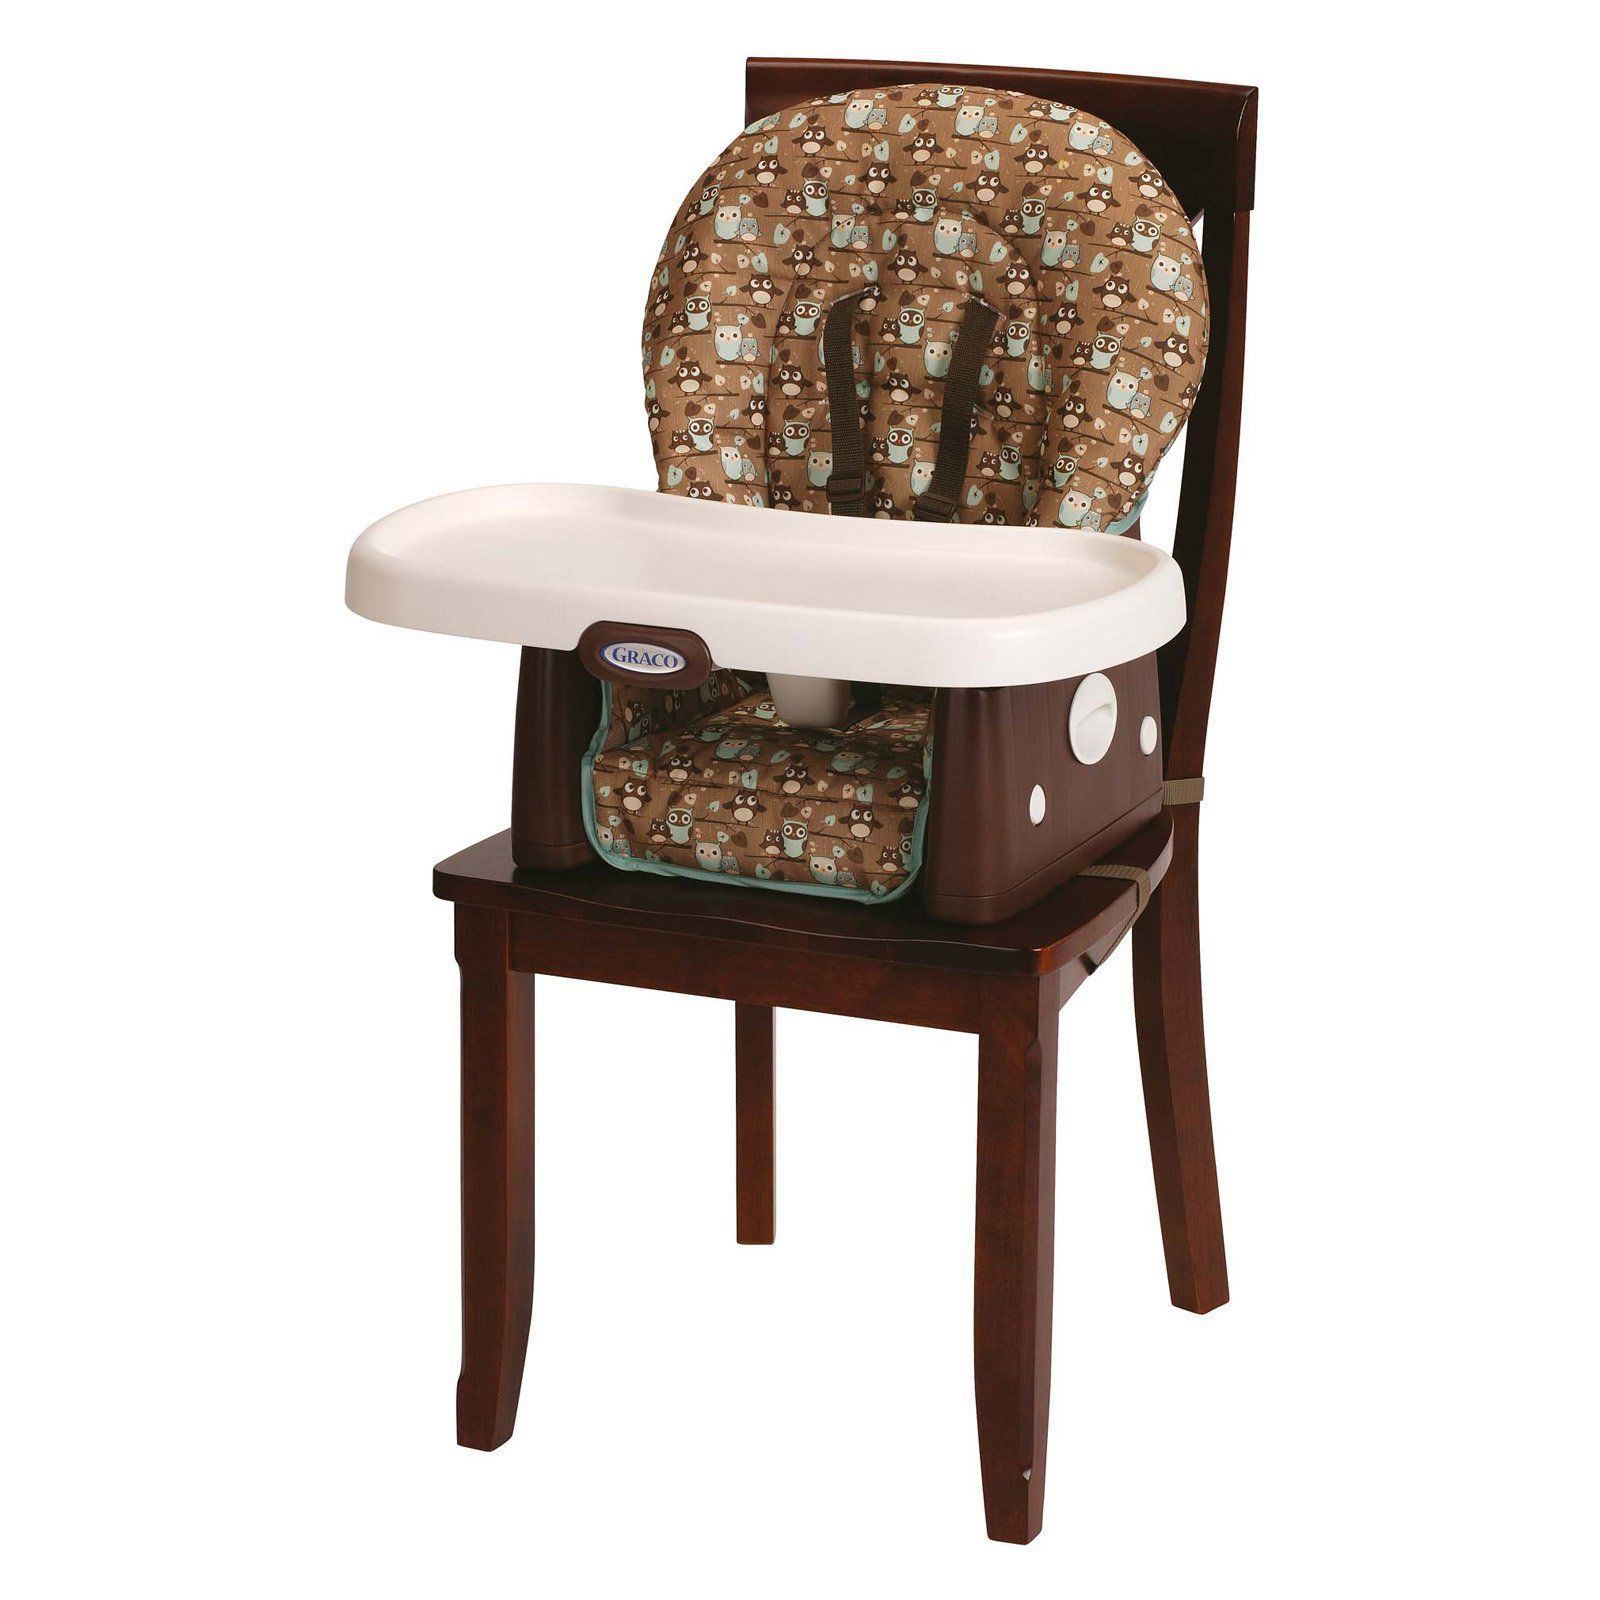 Graco Simpleswitch Highchair 1926287 Baby High Chair High